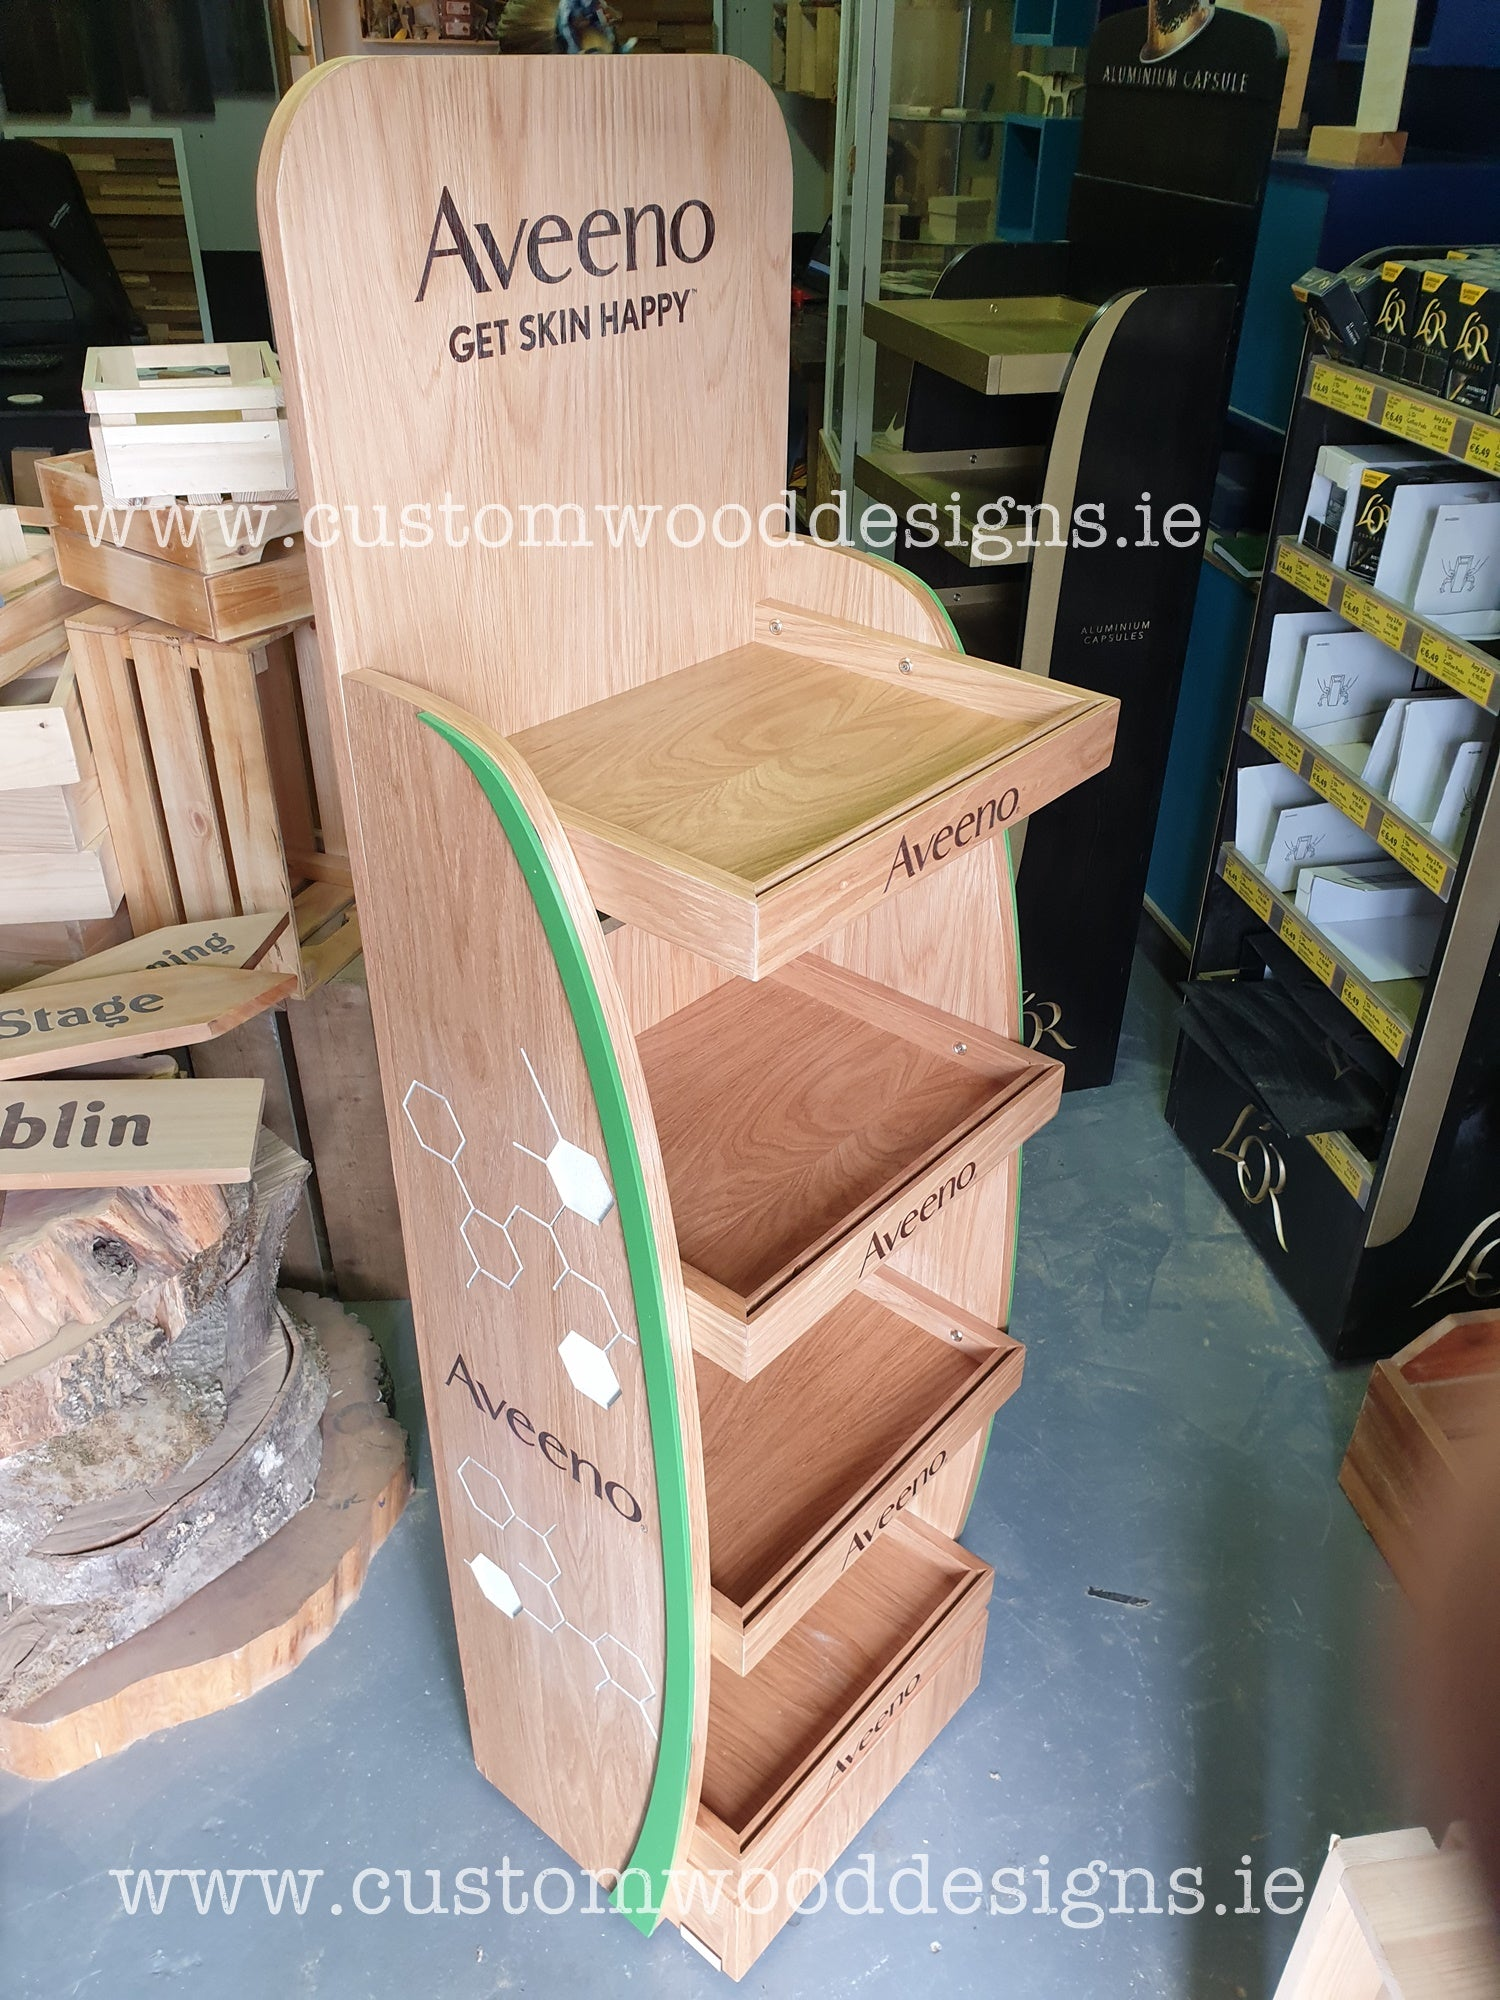 aveeno stand point of sale display irish manufacturer point od sale maker producer free standing unit display producer maker Ireland Dublin signs maker dublin beanding promotional product maker producer ireland dublin timber wooden festival stands the best sign amker ireland the best point of sale maker Dublin stuffing product wood promotional point of saele maker Dublin Ireland point of sale producer irish producer fsdu counter display units counter retail display specialists retail space display sepcialists retail wooden display shop wooden display maker manufacturer shop retail maker wood producer pint of sale branded crates branded items  prmanent fsdu point of sale display irish manufacturer point od sale maker producer free standing unit display producer maker Ireland Dublin signs maker dublin beanding promotional product maker producer ireland dublin timber wooden festival stands the best sign amker ireland the best point of sale maker Dublin stuffing product wood promotional point of saele maker Dublin Ireland point of sale producer irish producer fsdu counter display units counter retail display specialists retail space display sepcialists retail wooden display shop wooden display maker manufacturer shop retail maker wood producer pint of sale branded crates branded items